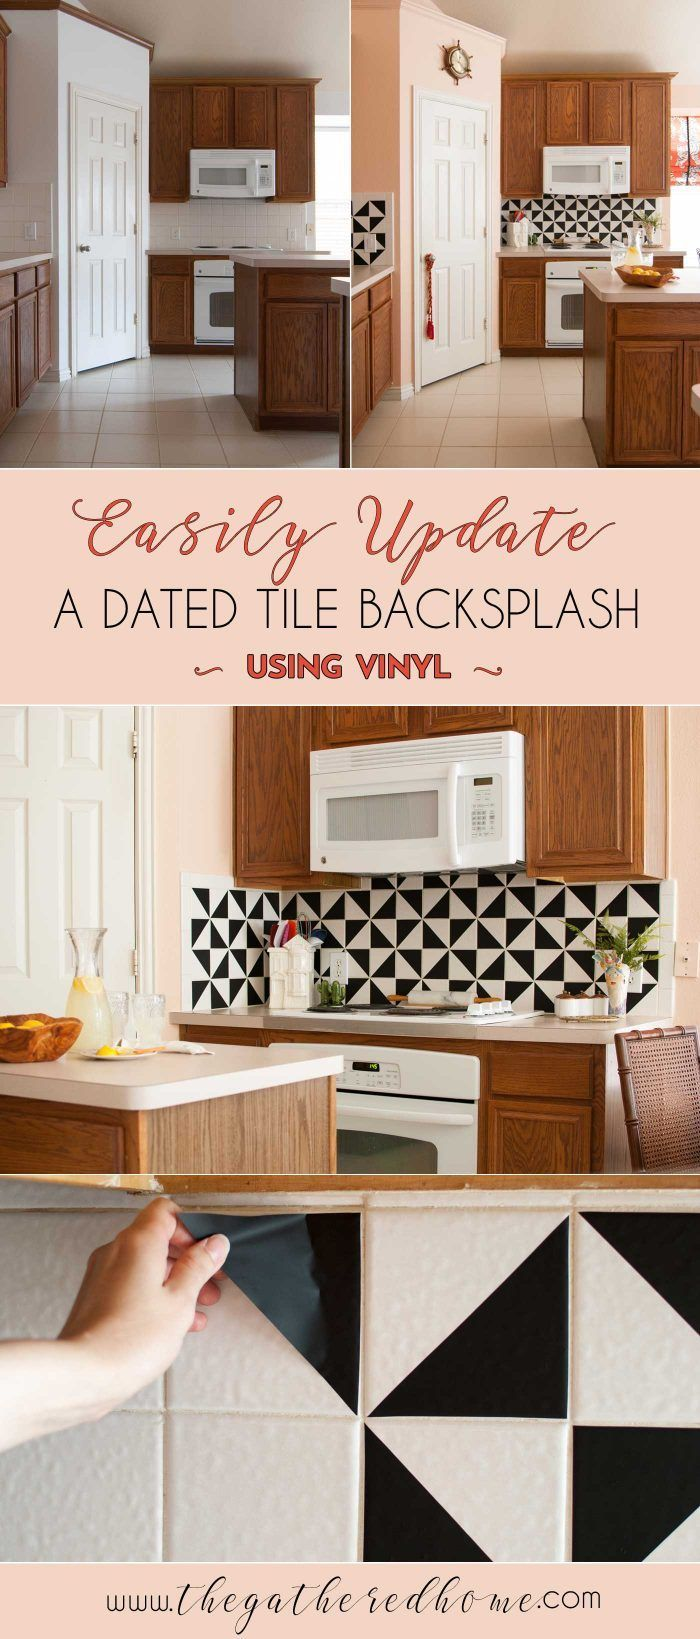 Diy black and white vinyl backsplash kitchen backsplash cement i love the look of trendy black and white cement tiles this diy kitchen backsplash makeover uses vinyl to get a similar look what dailygadgetfo Image collections